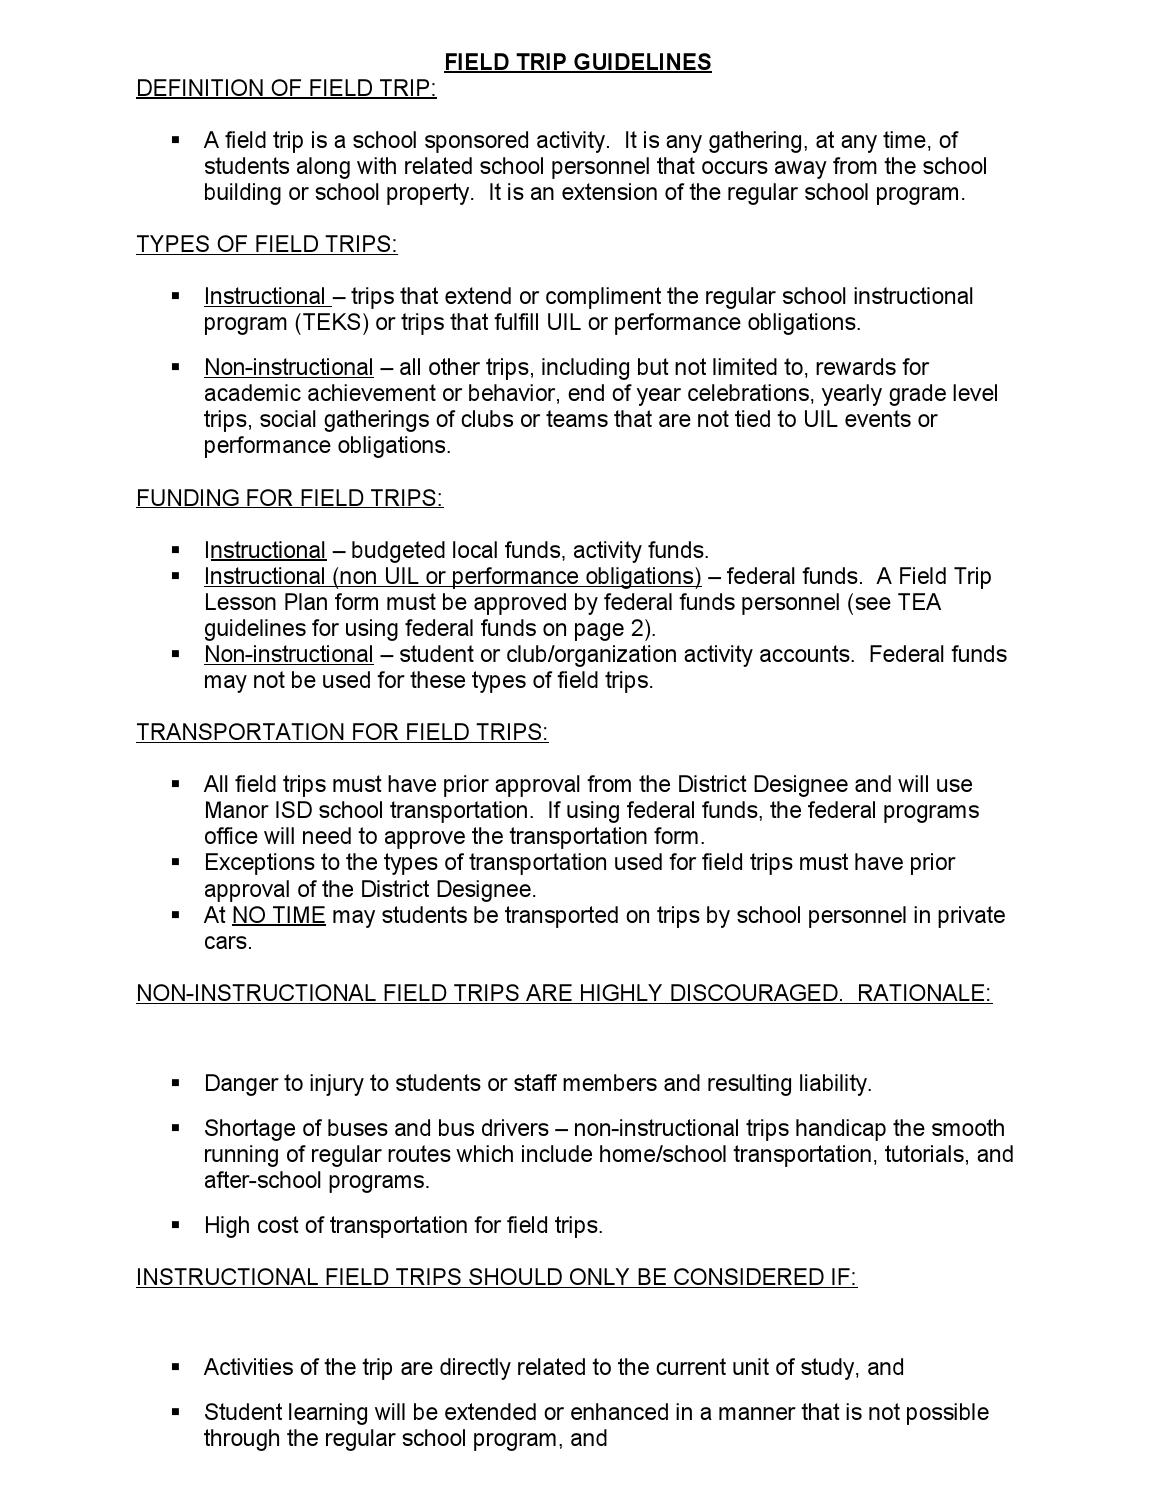 field trip guidelines and lesson plan form (1) by manor excel